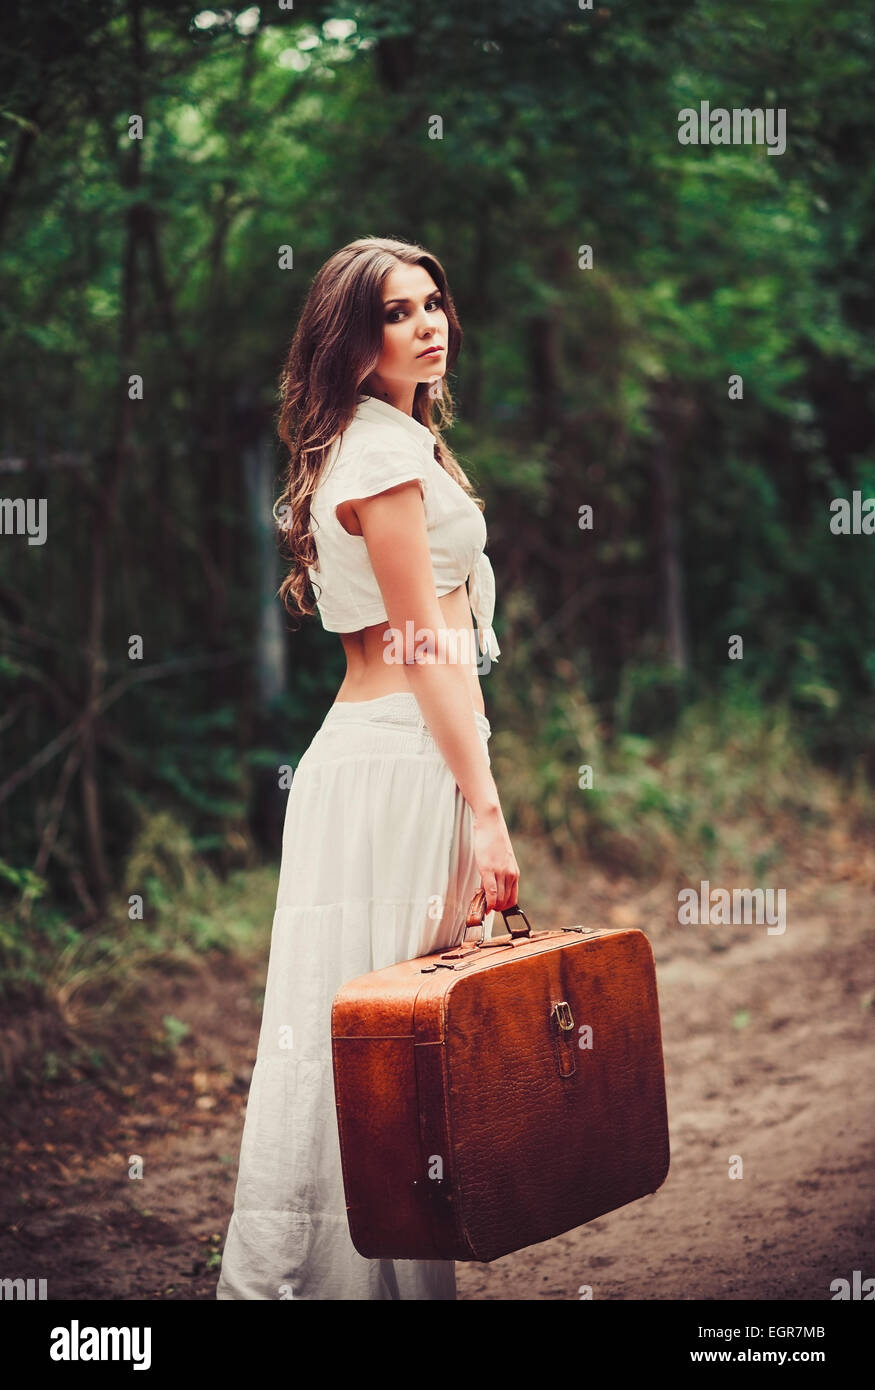 Beautiful young sad woman with suitcase in hand standing on a road - Stock Image